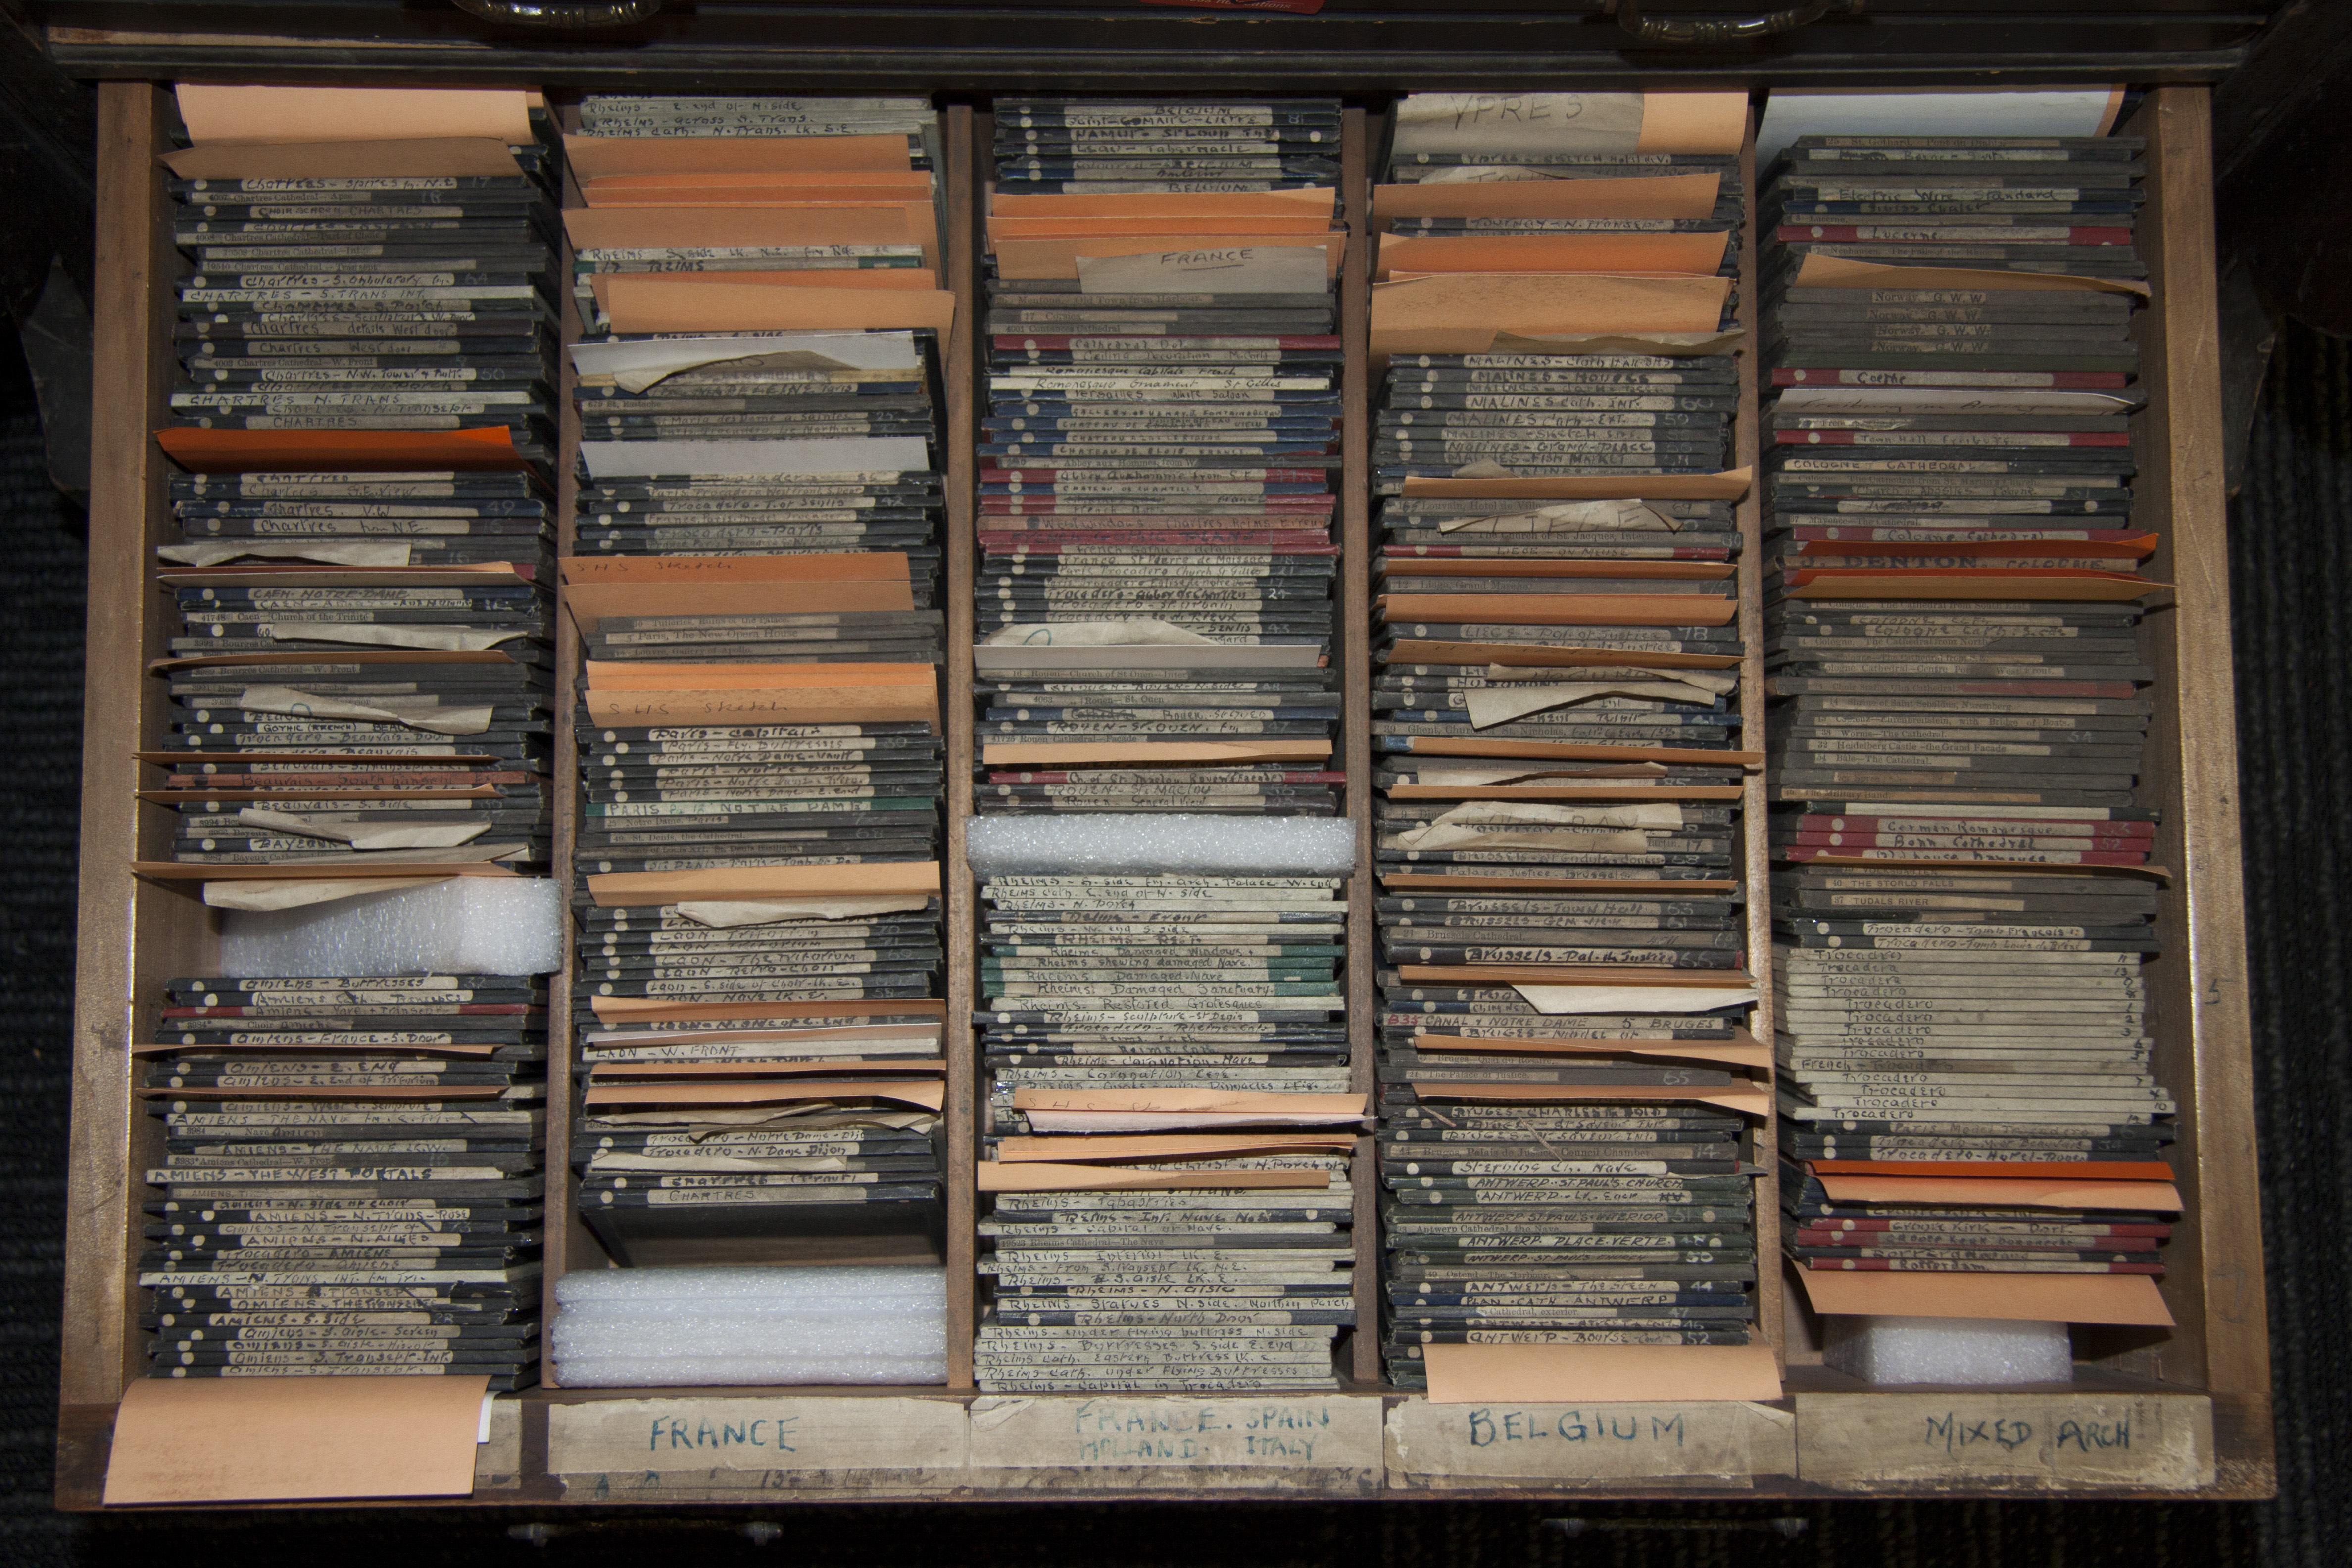 Drawer of ARTH lantern slides